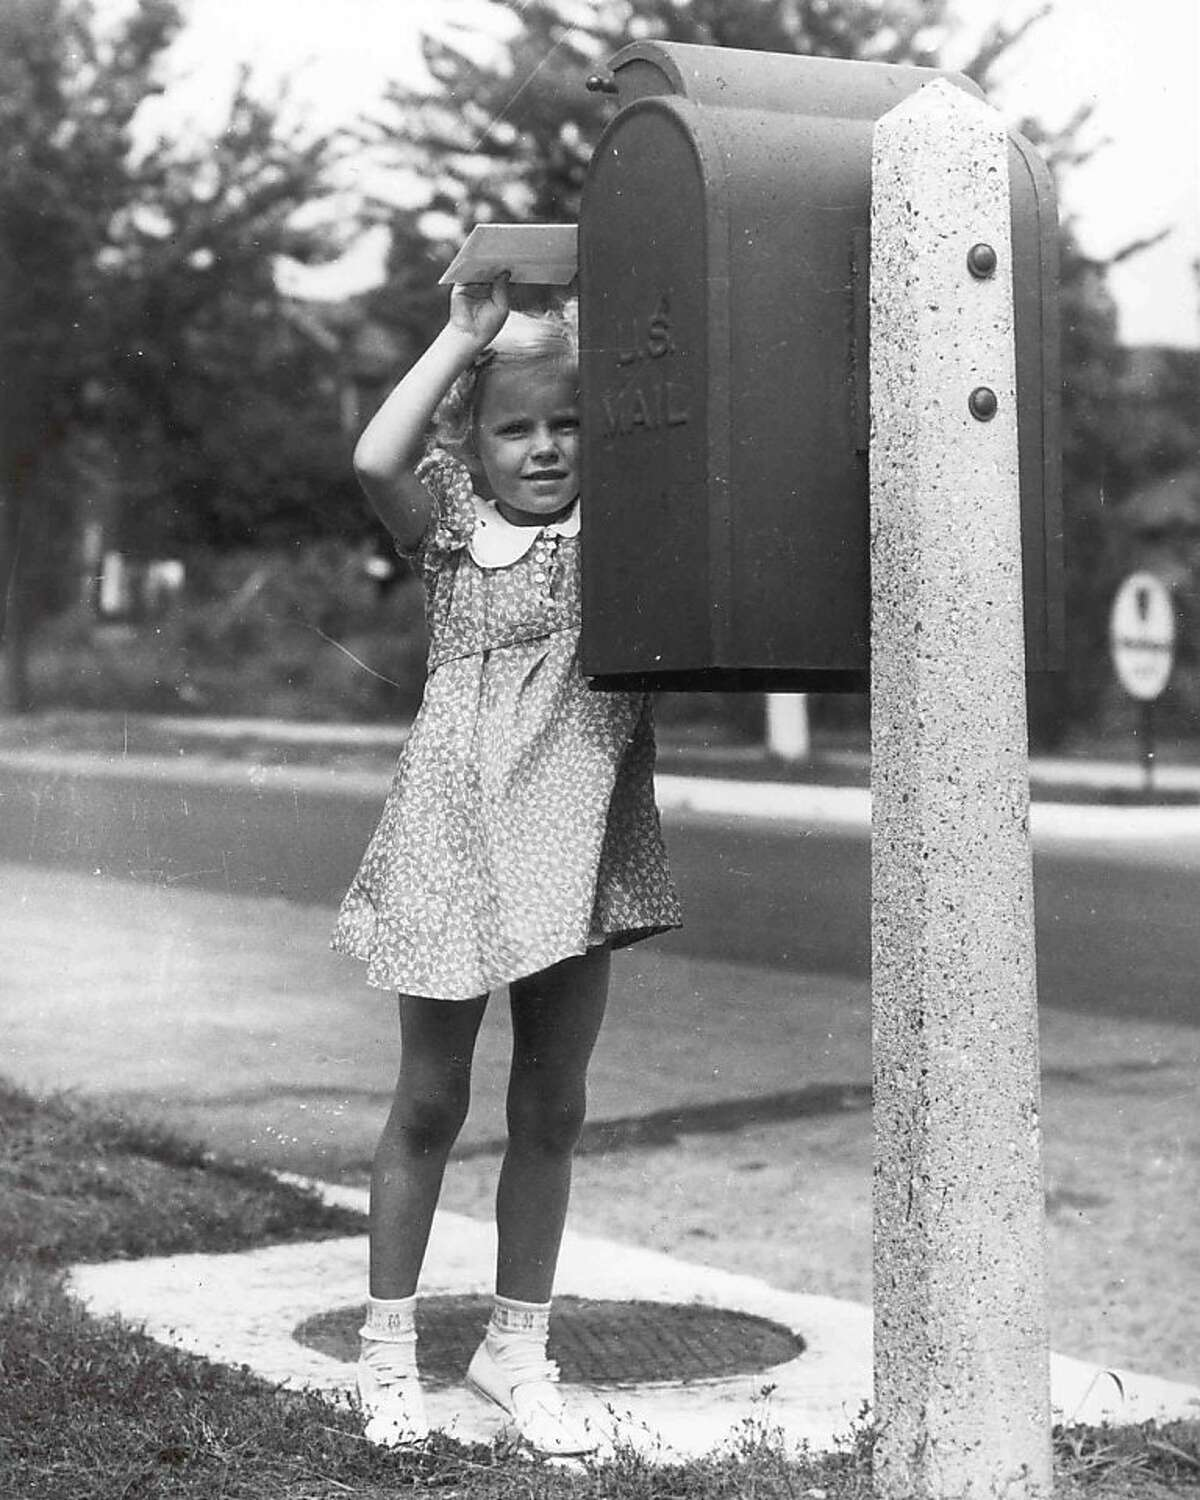 Before the 1950s, mailboxes were affixed to lamp posts.